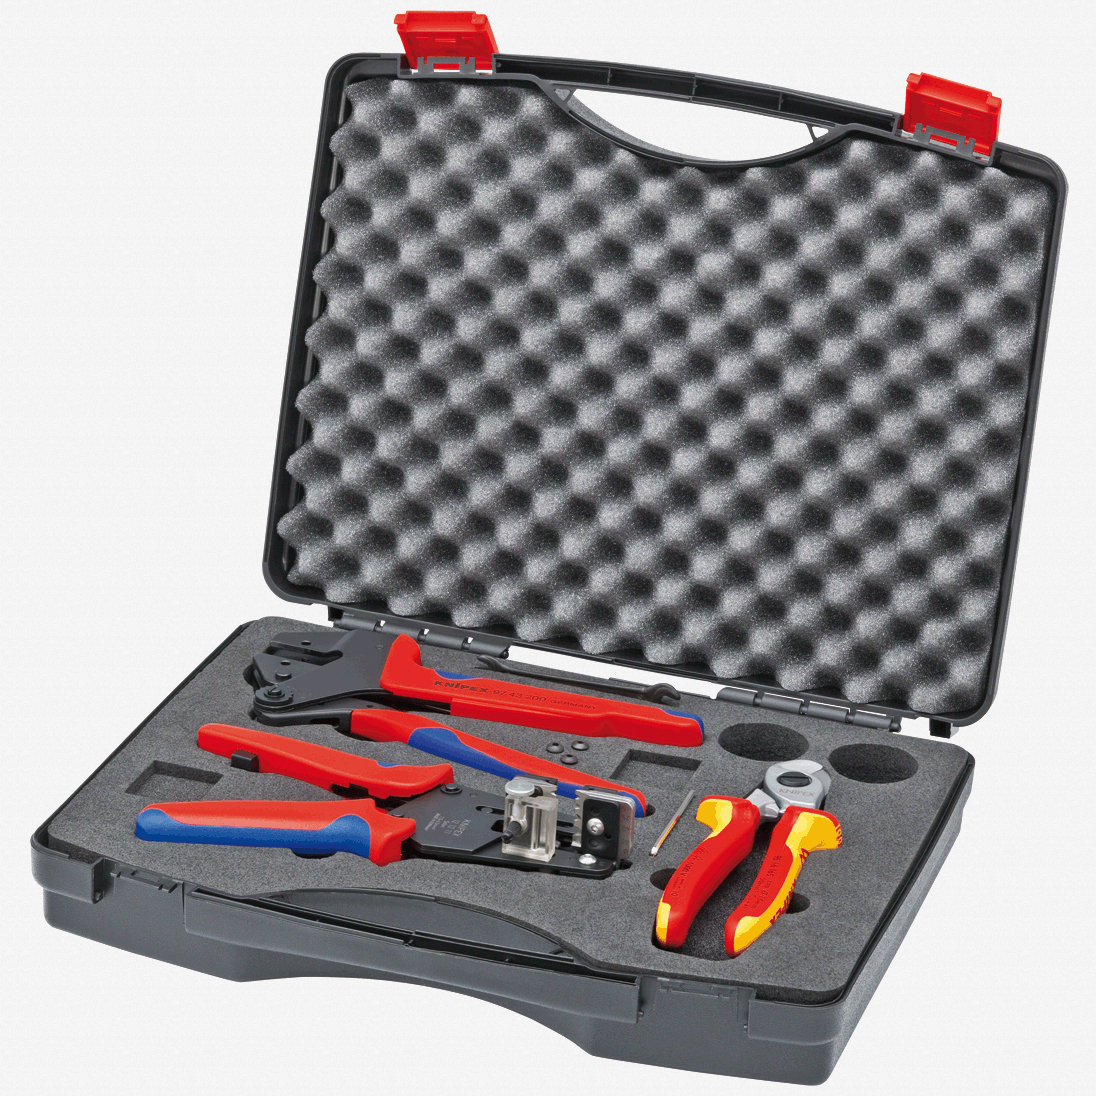 Knipex 97-91-01 Tool Case for Photovoltaics - KC Tool